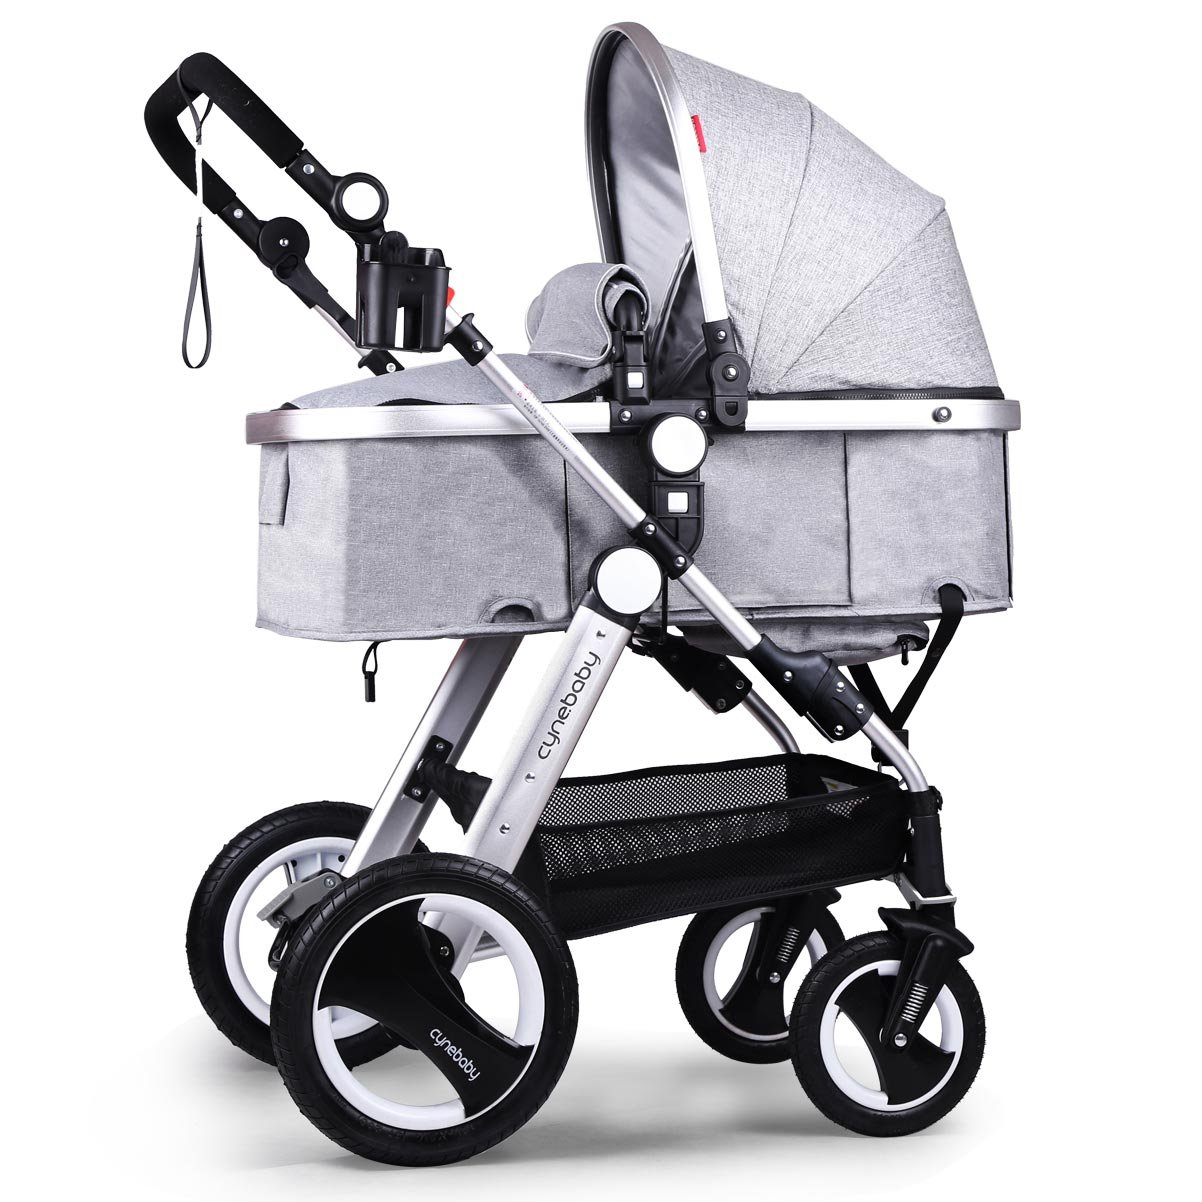 Amazon.com : IROCH Rain cover for baby pram, Universal